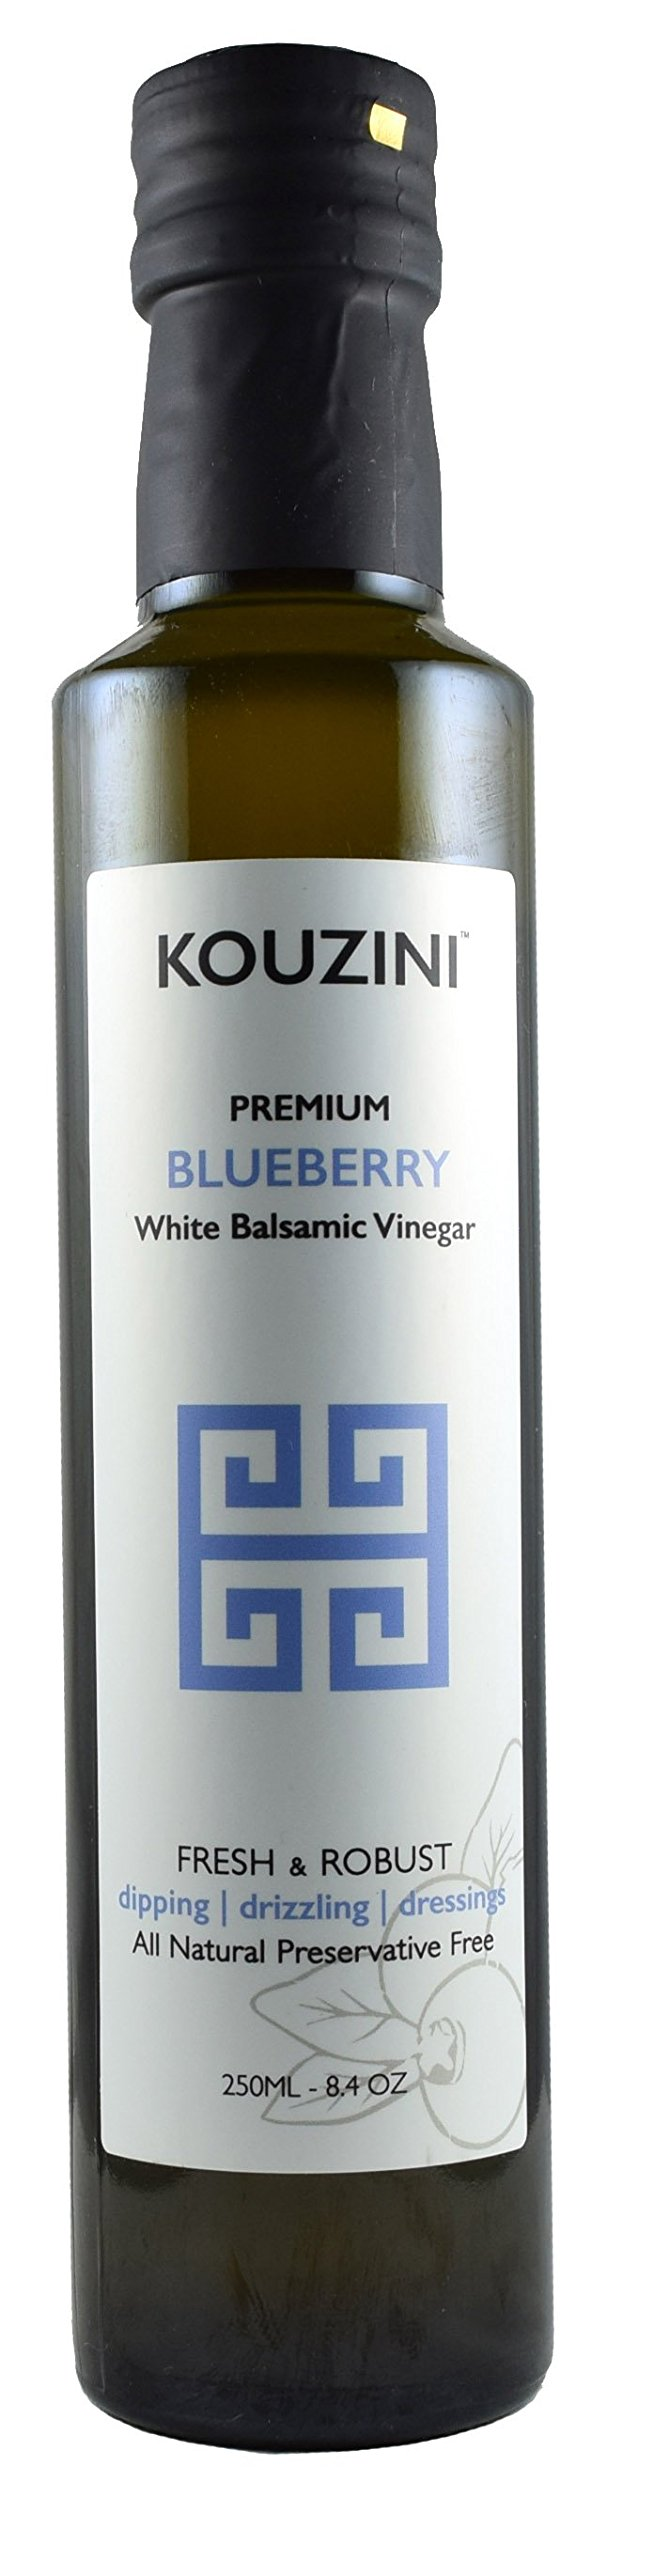 Kouzini White Blueberry Balsamic Vinegar (Limited time edition) 1 Blueberry Naturally thick, sweet and delicious. Great for drizzling, dippings, dressings, and marinades.